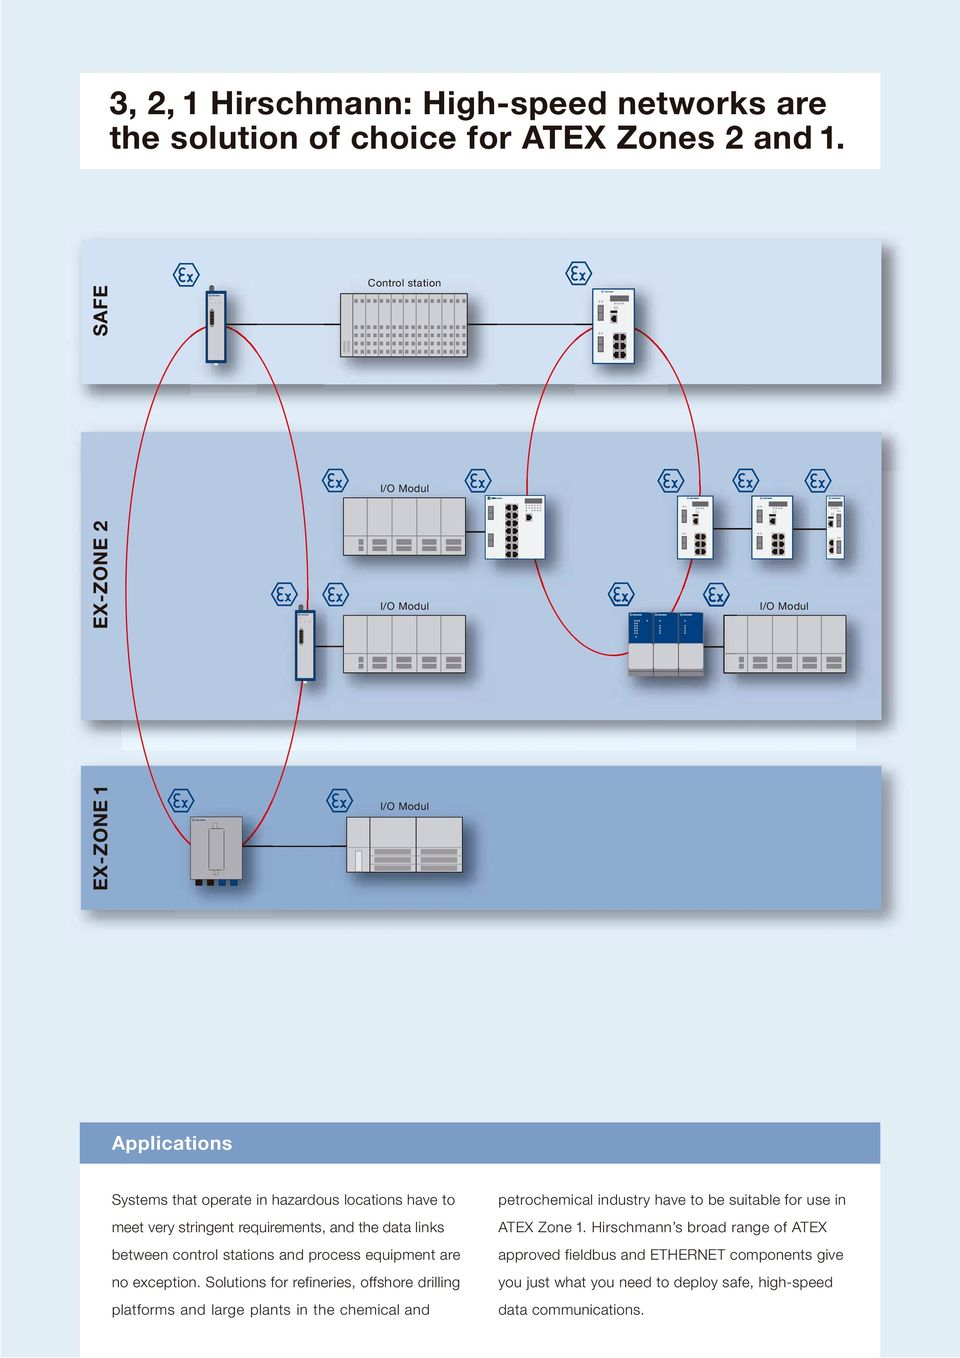 links between control stations and process equipment are no exception.